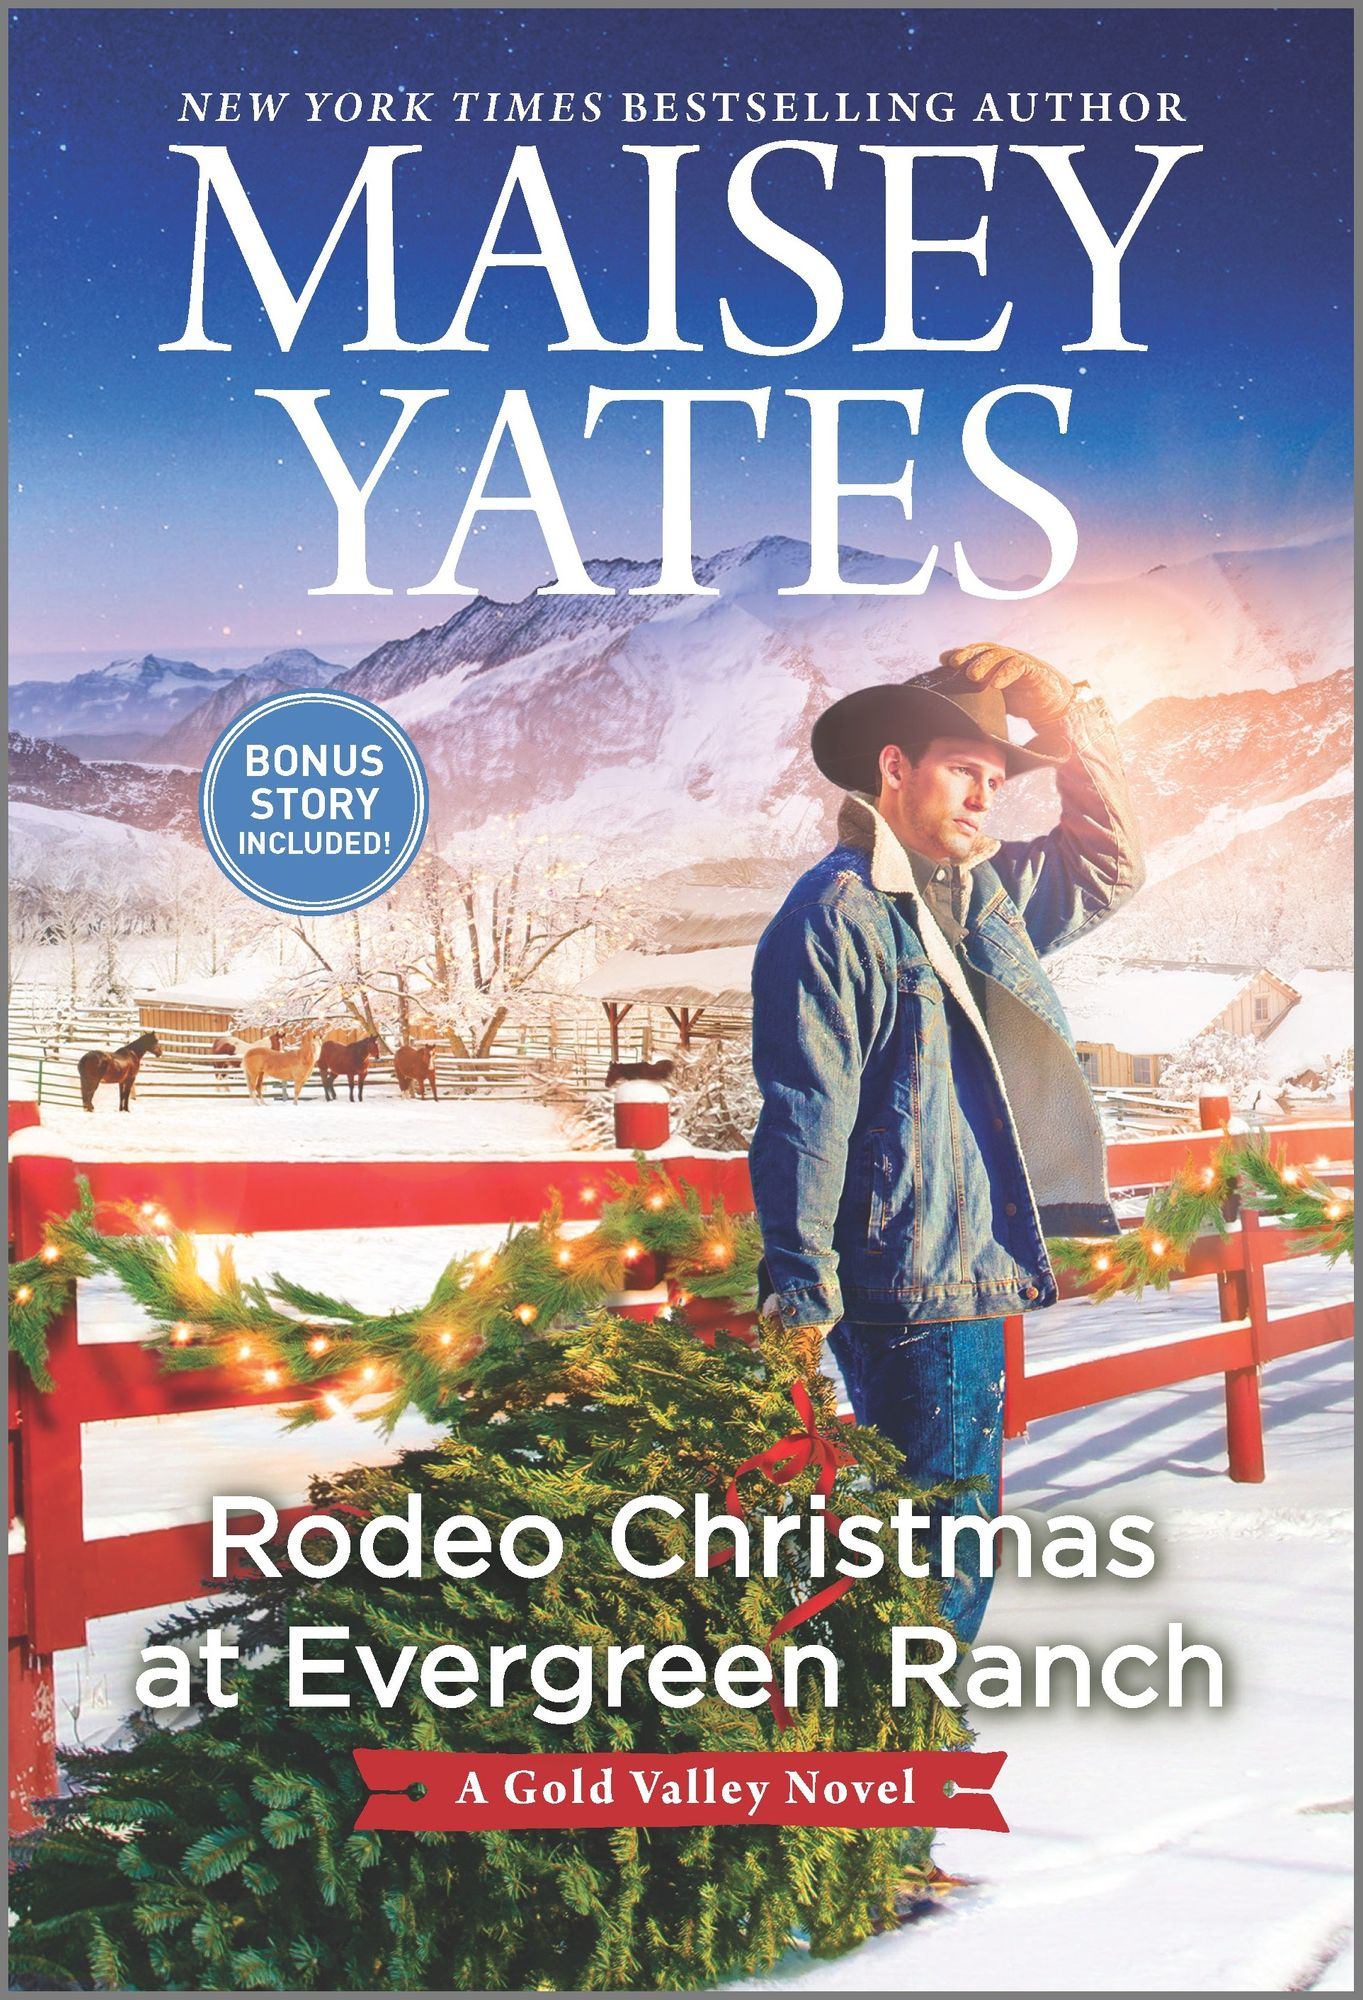 Rodeo Christmas at Evergreen Ranch by Maisey Yates